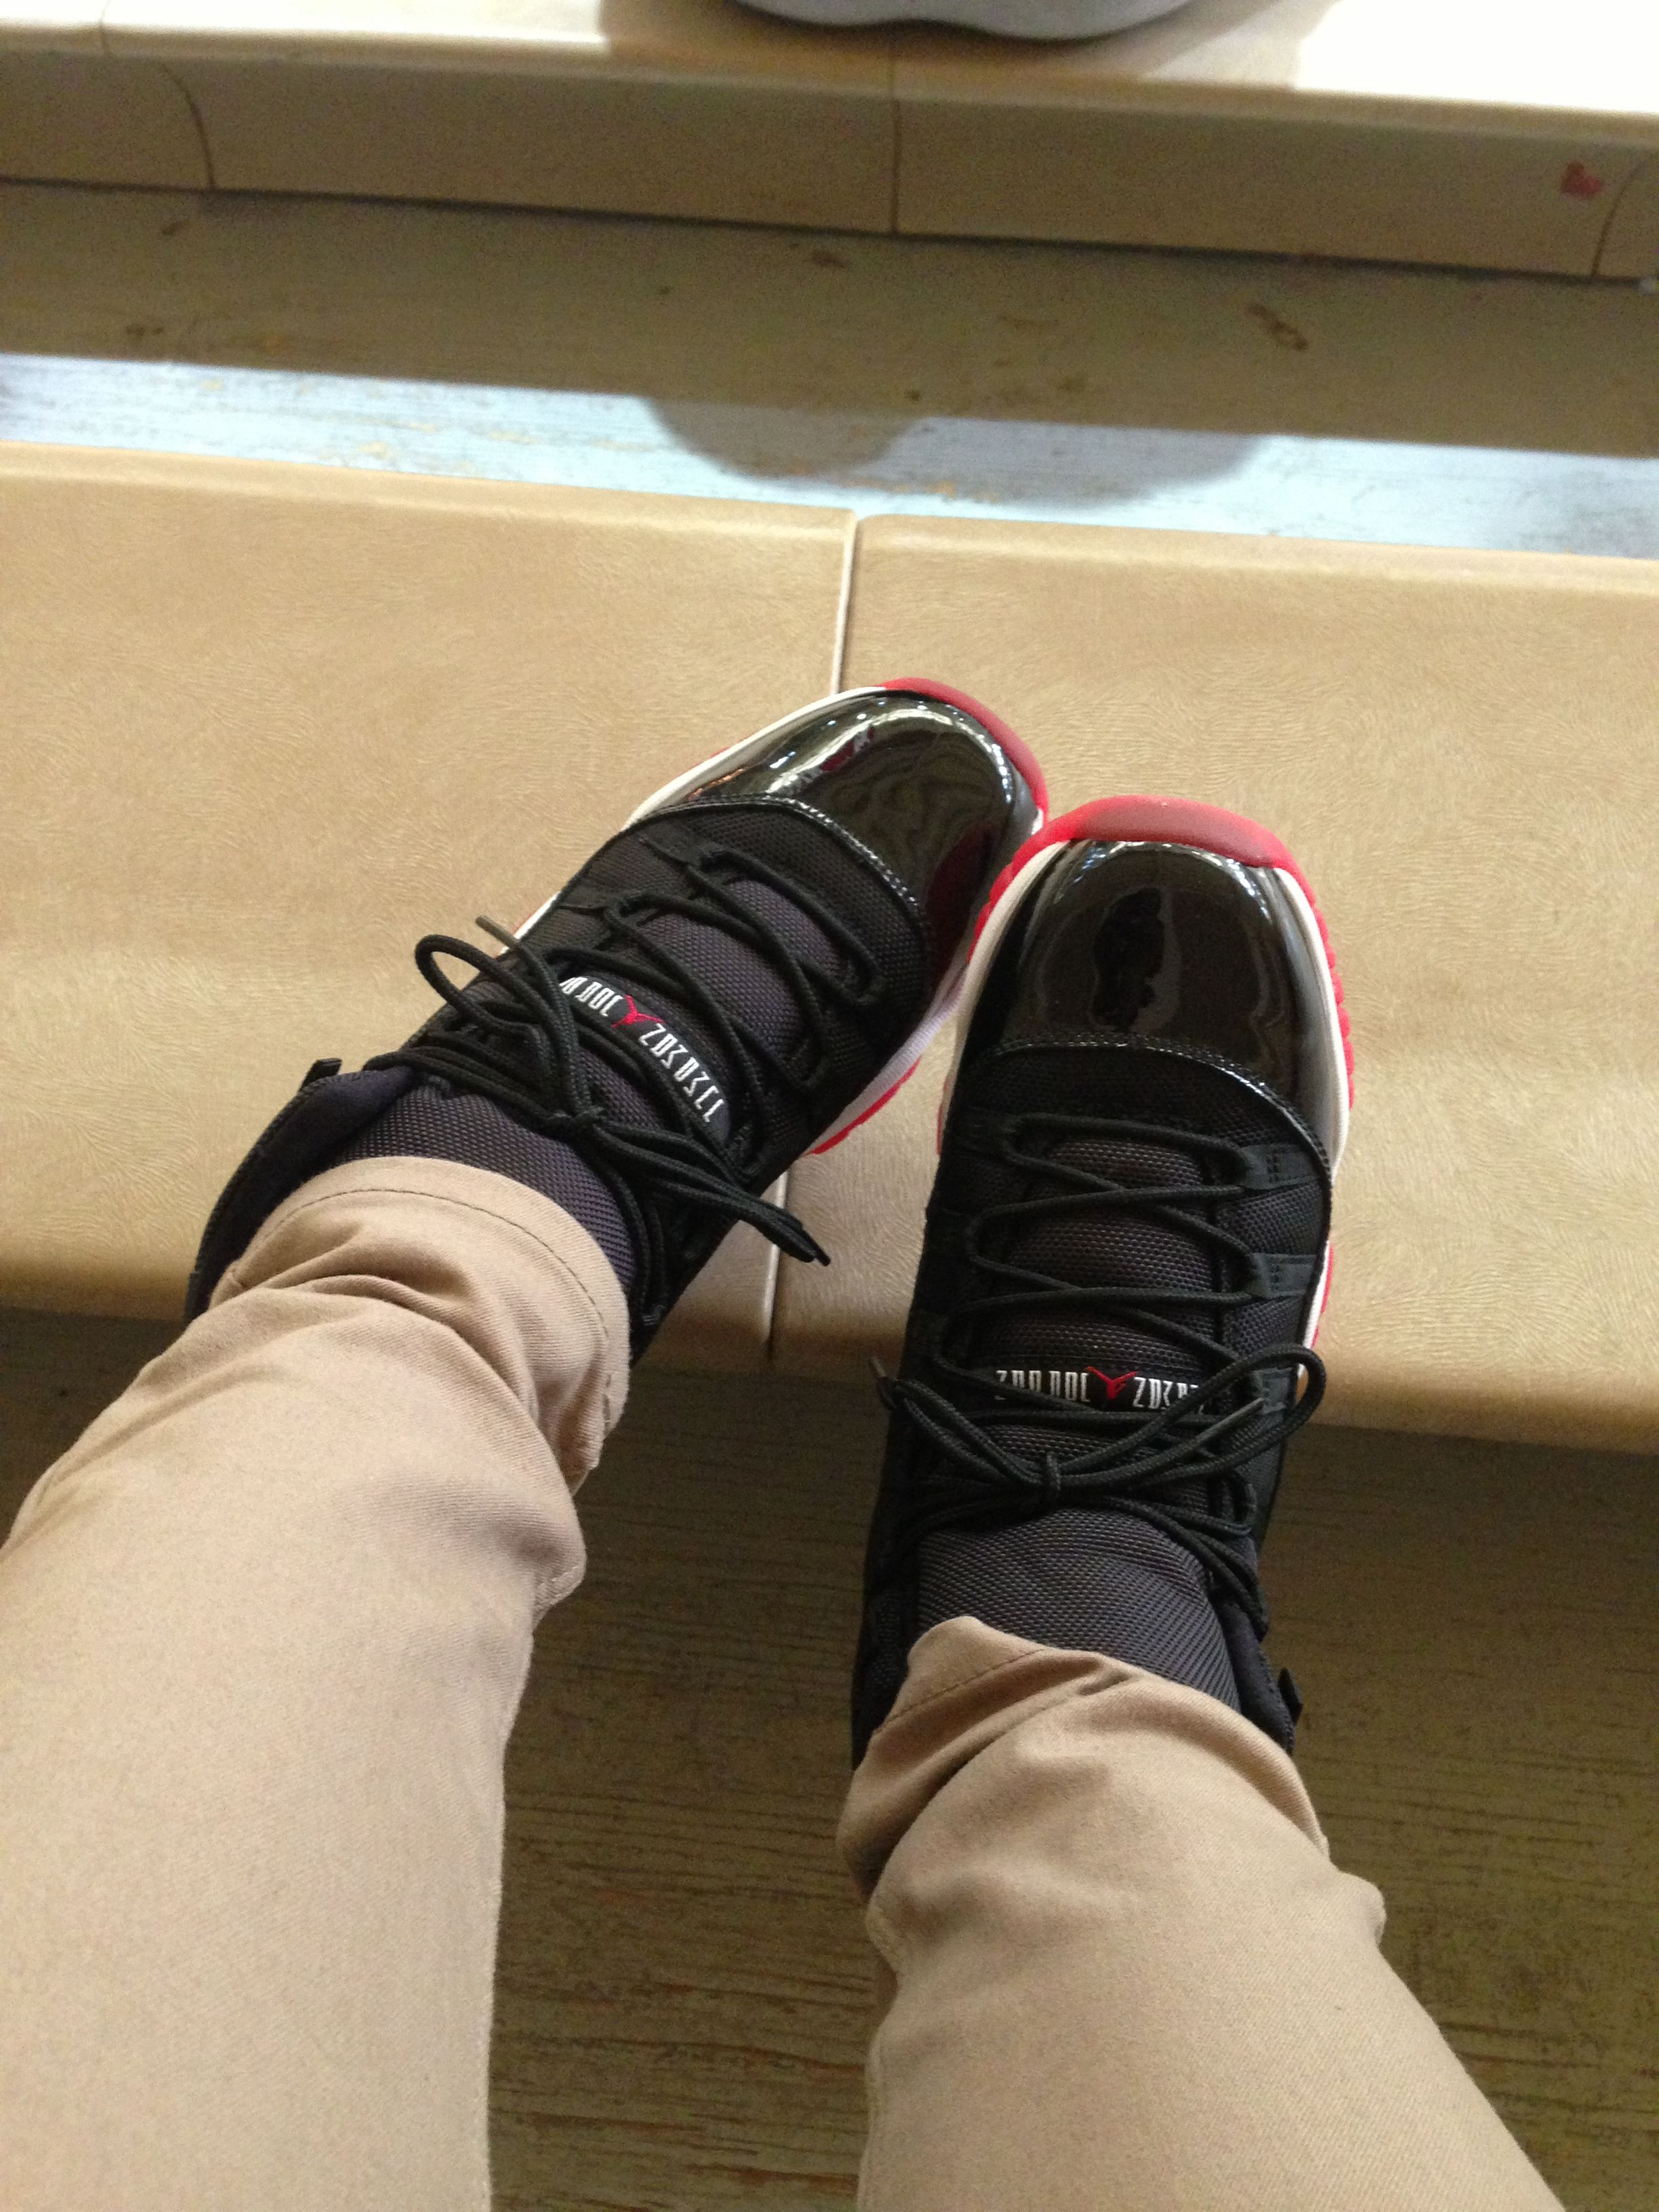 Bred XIs - the unDS game is real! #iLoveKicks